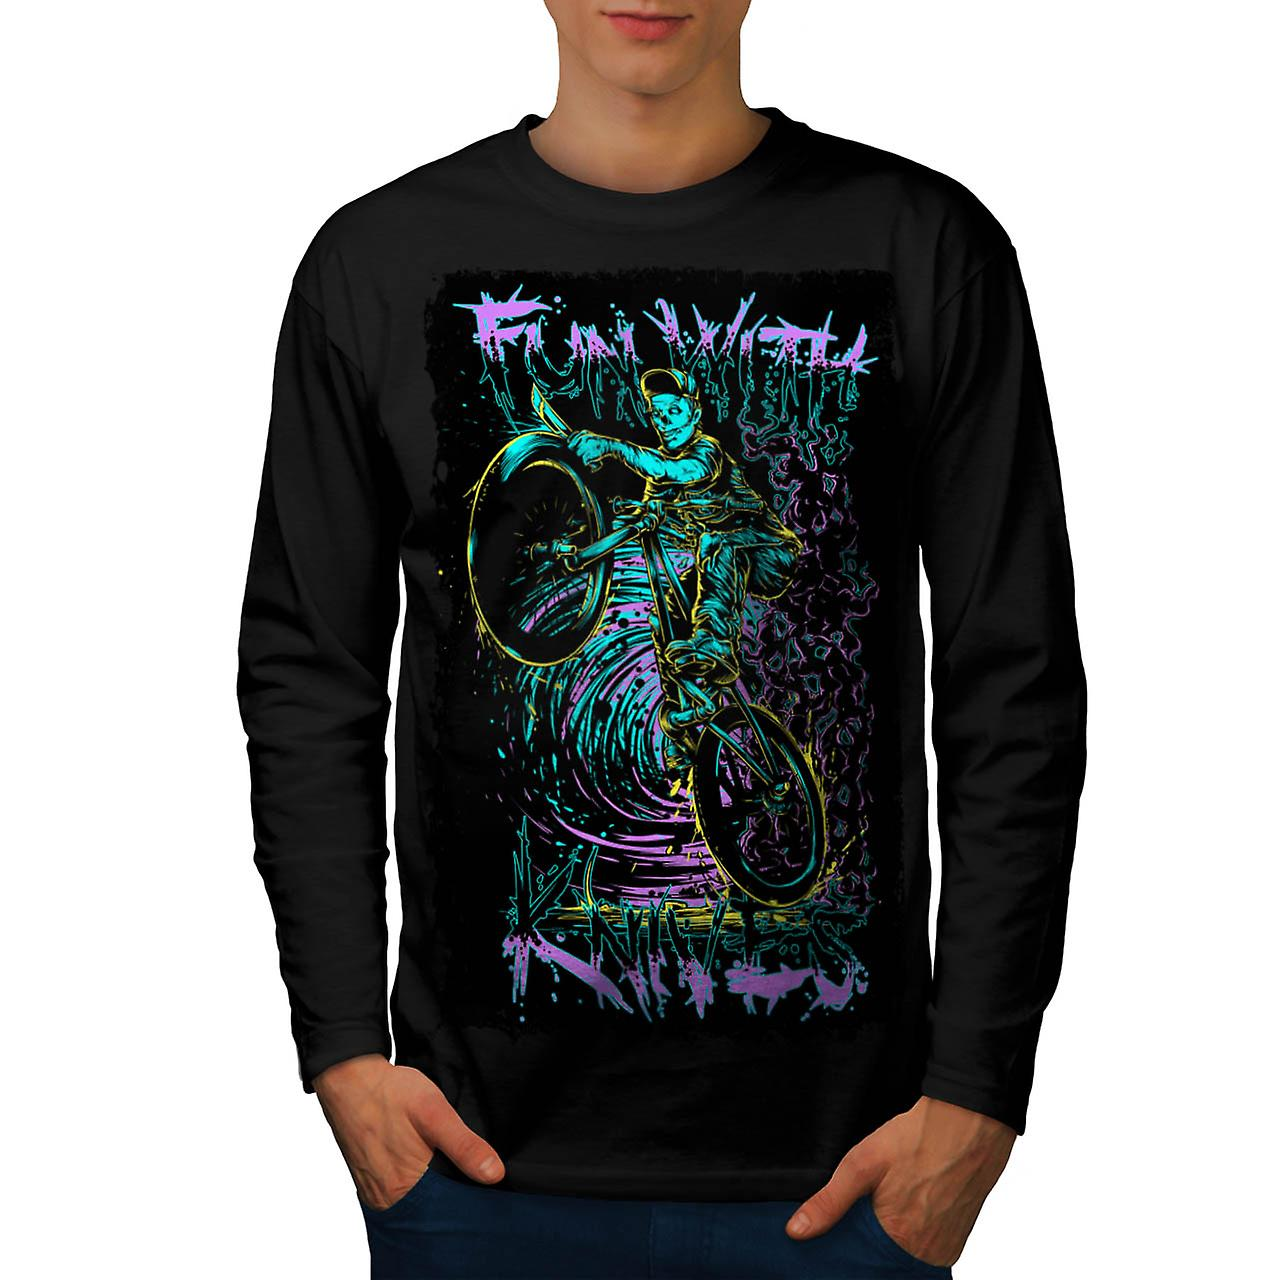 Fun With Knives Rider Zombie Bike Men Black Long Sleeve T-shirt | Wellcoda